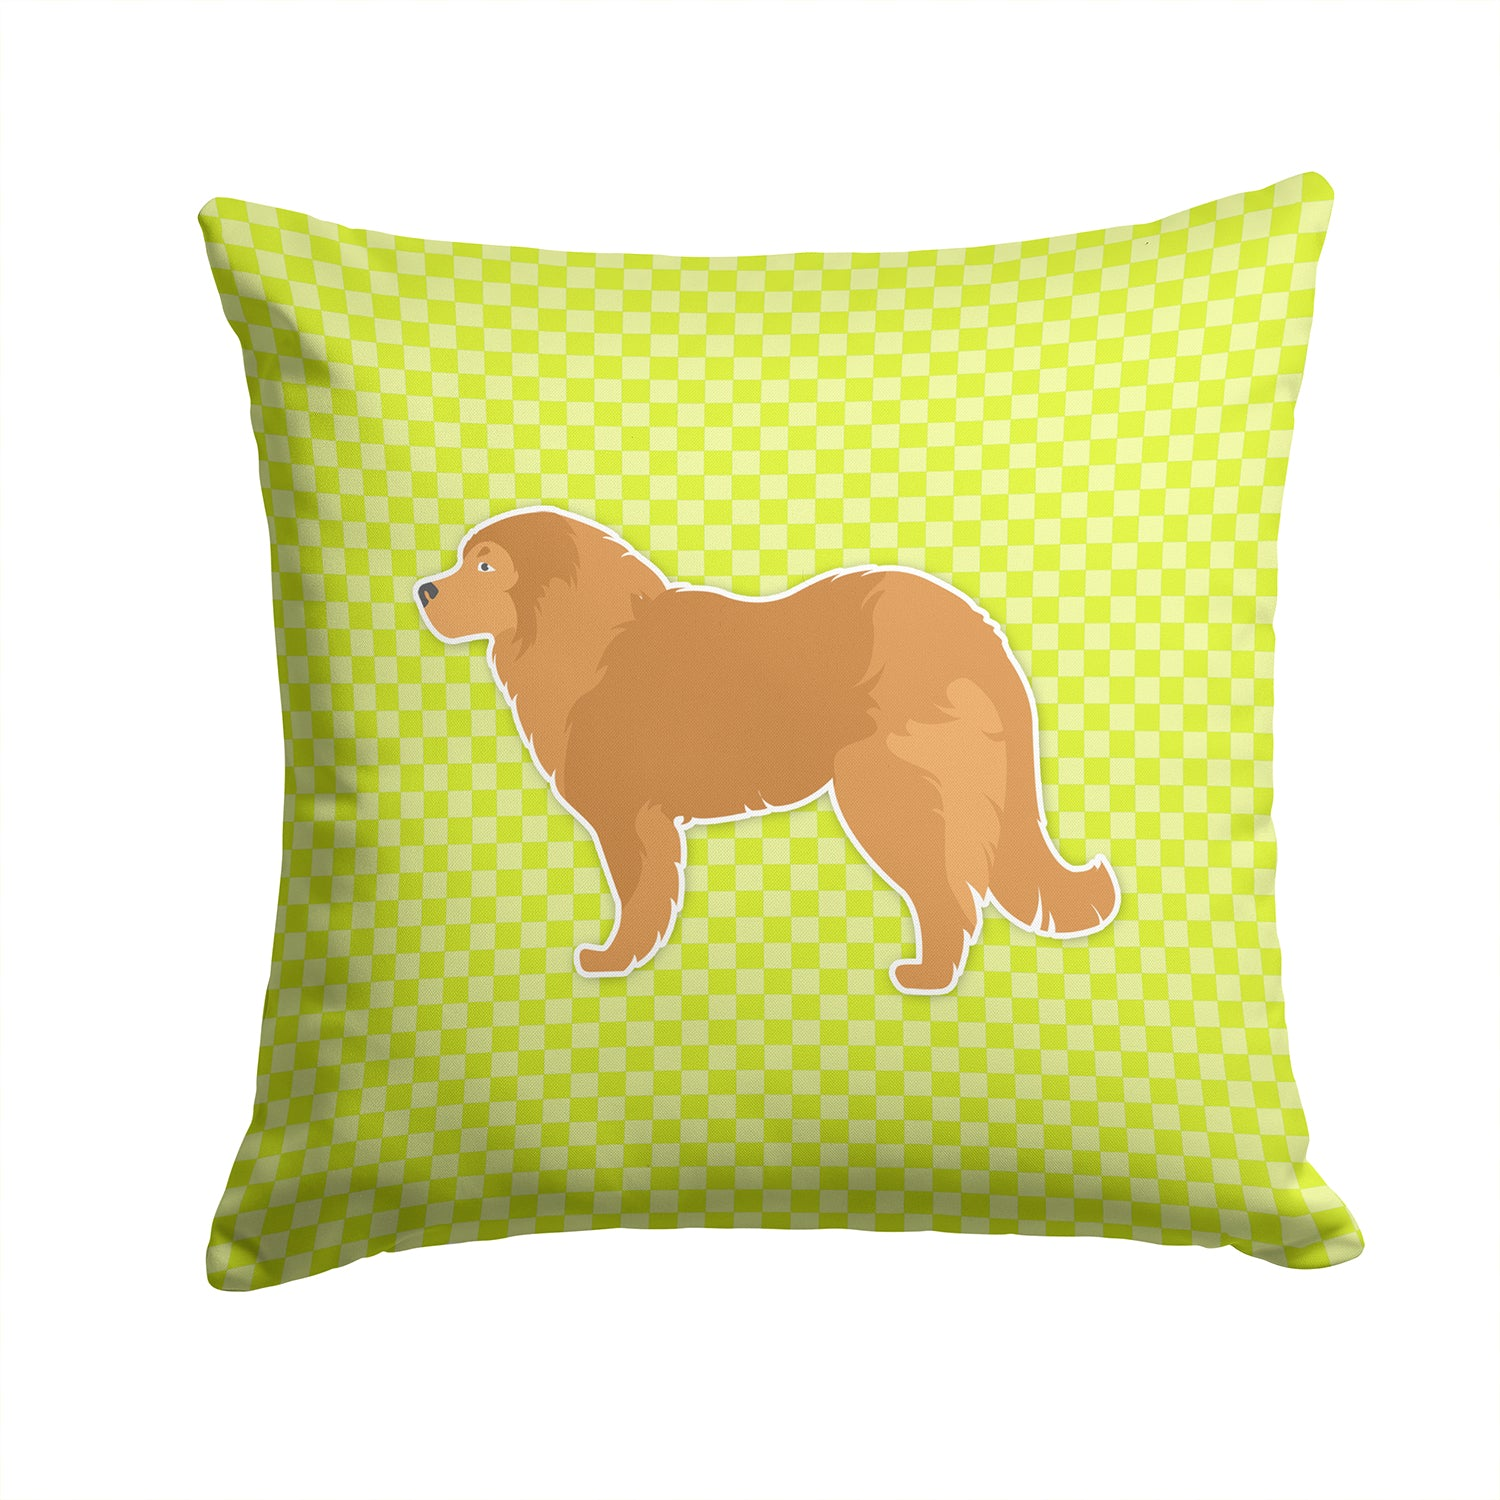 Caucasian Shepherd Dog Checkerboard Green Fabric Decorative Pillow BB3825PW1414 by Caroline's Treasures